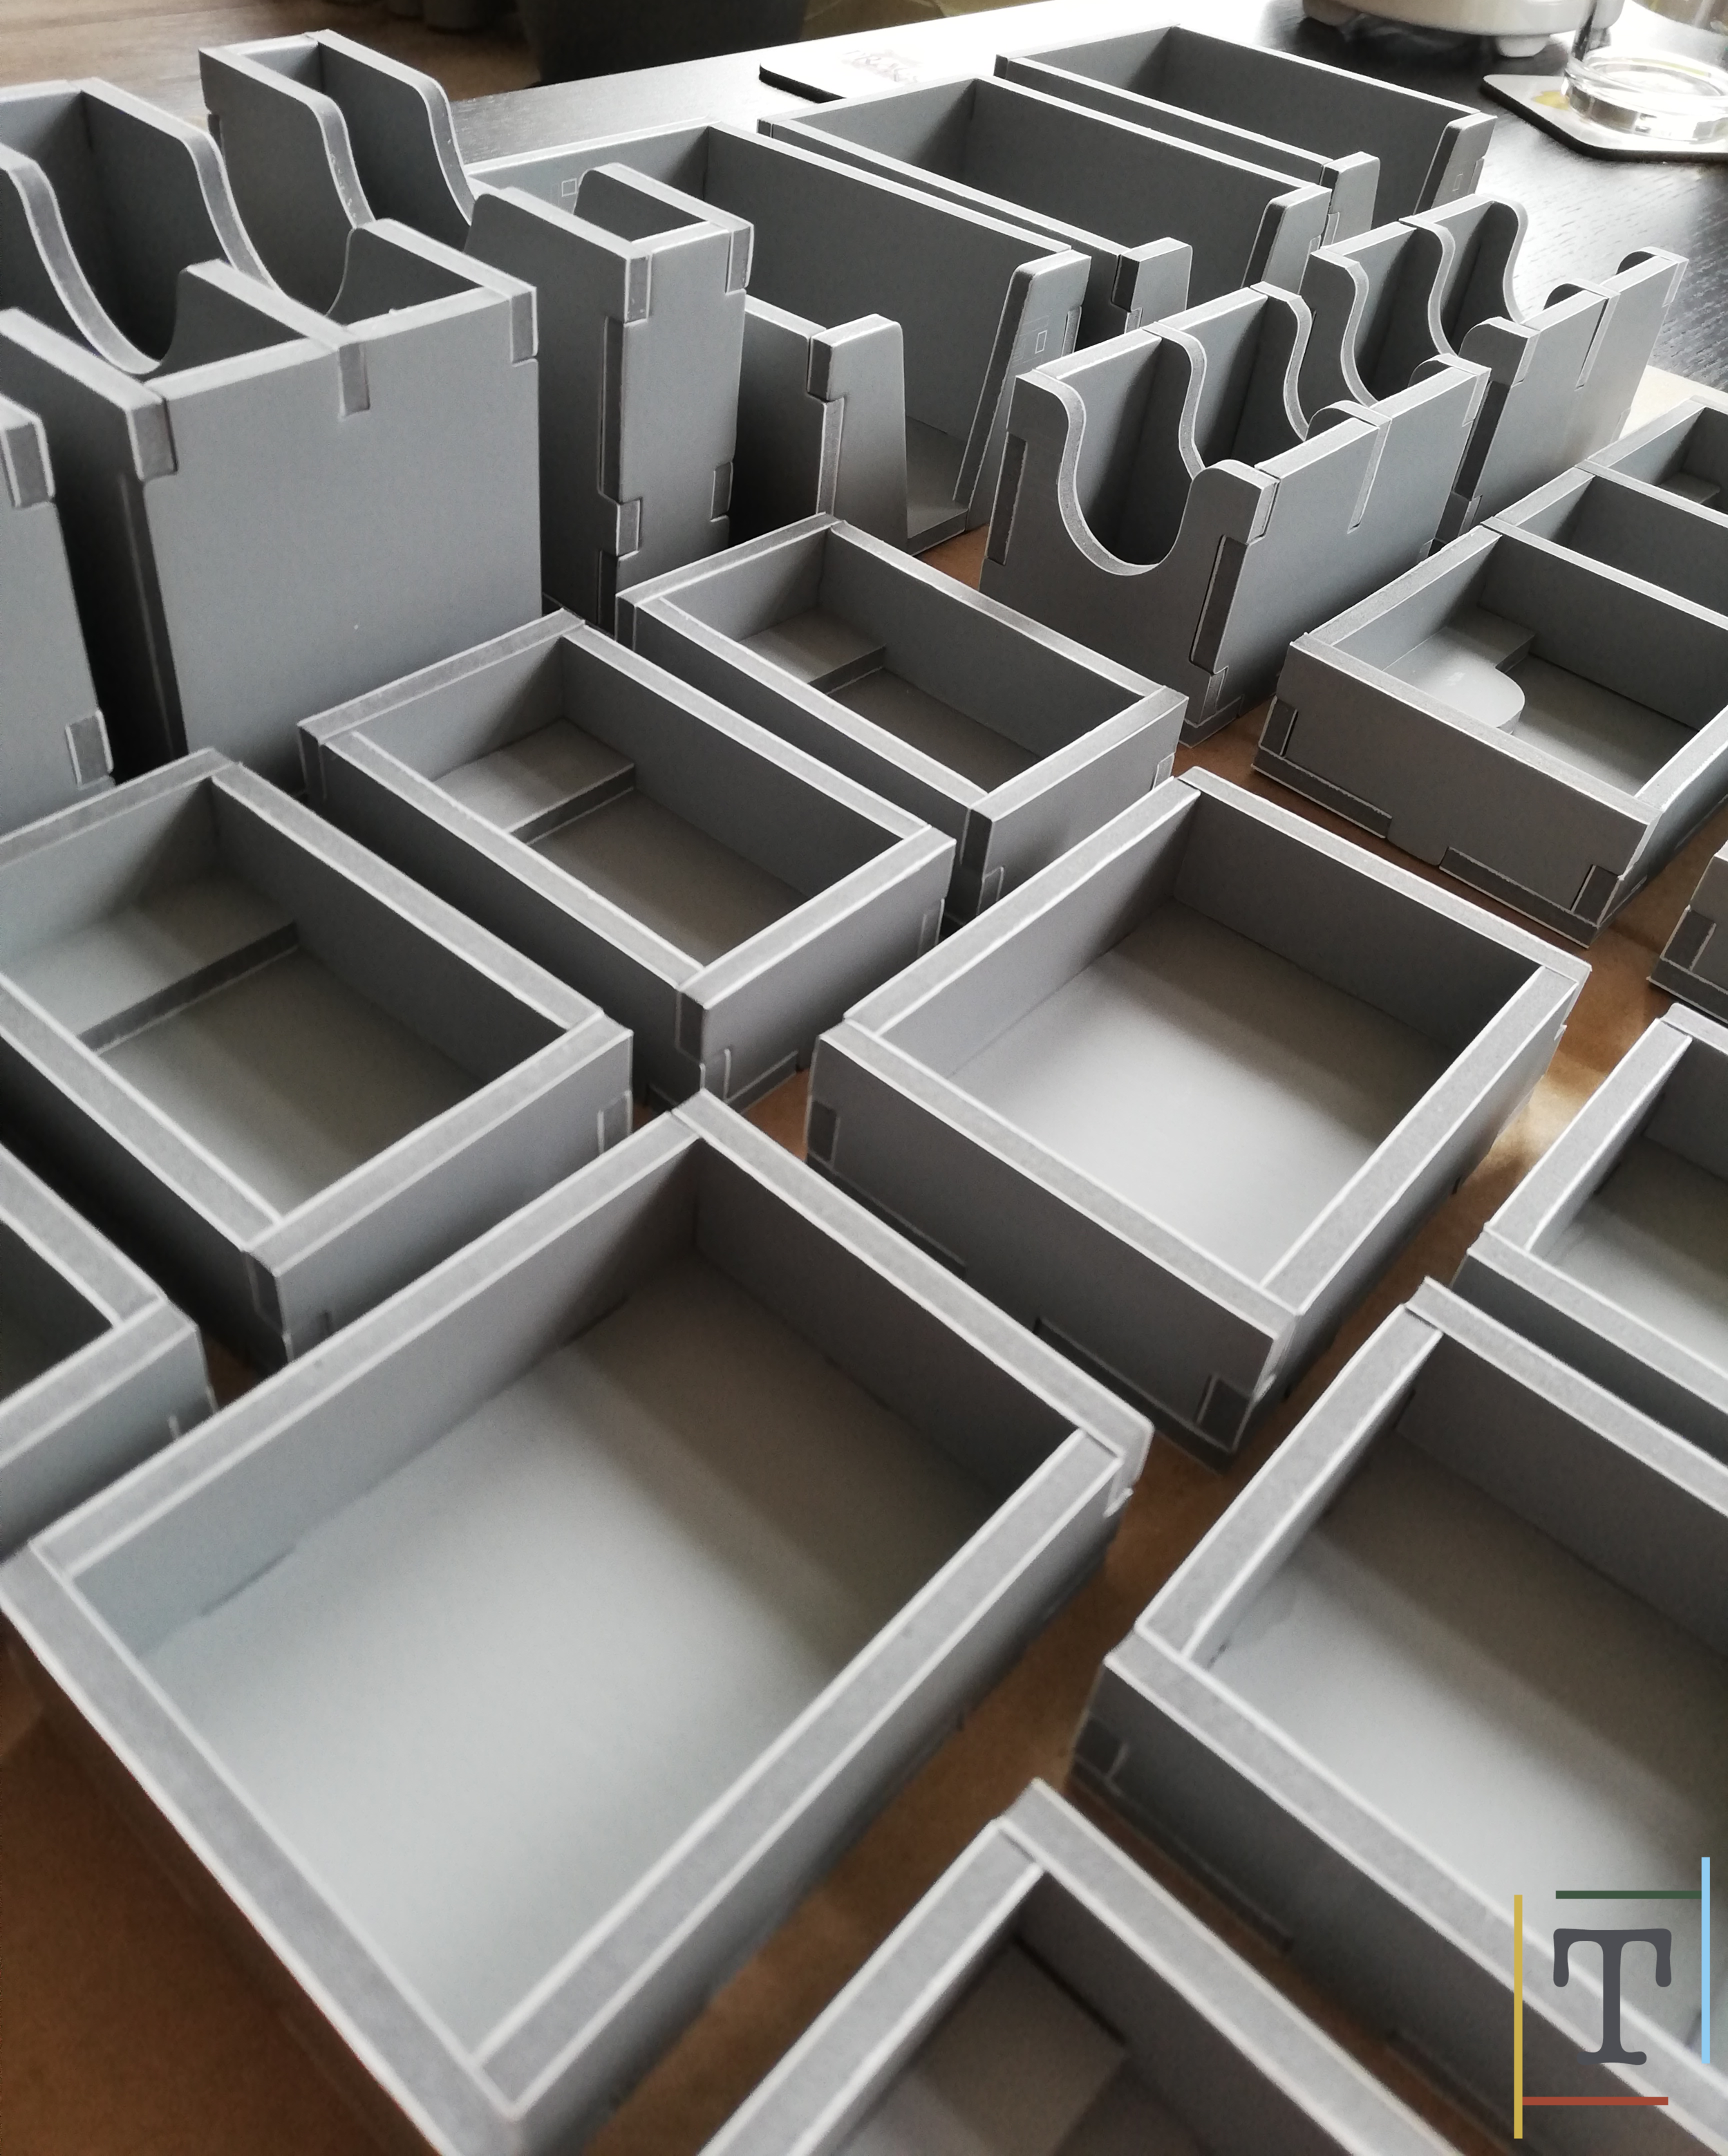 Making the inserts requires you to make lots of these trays. This is part of the Terraforming Mars insert